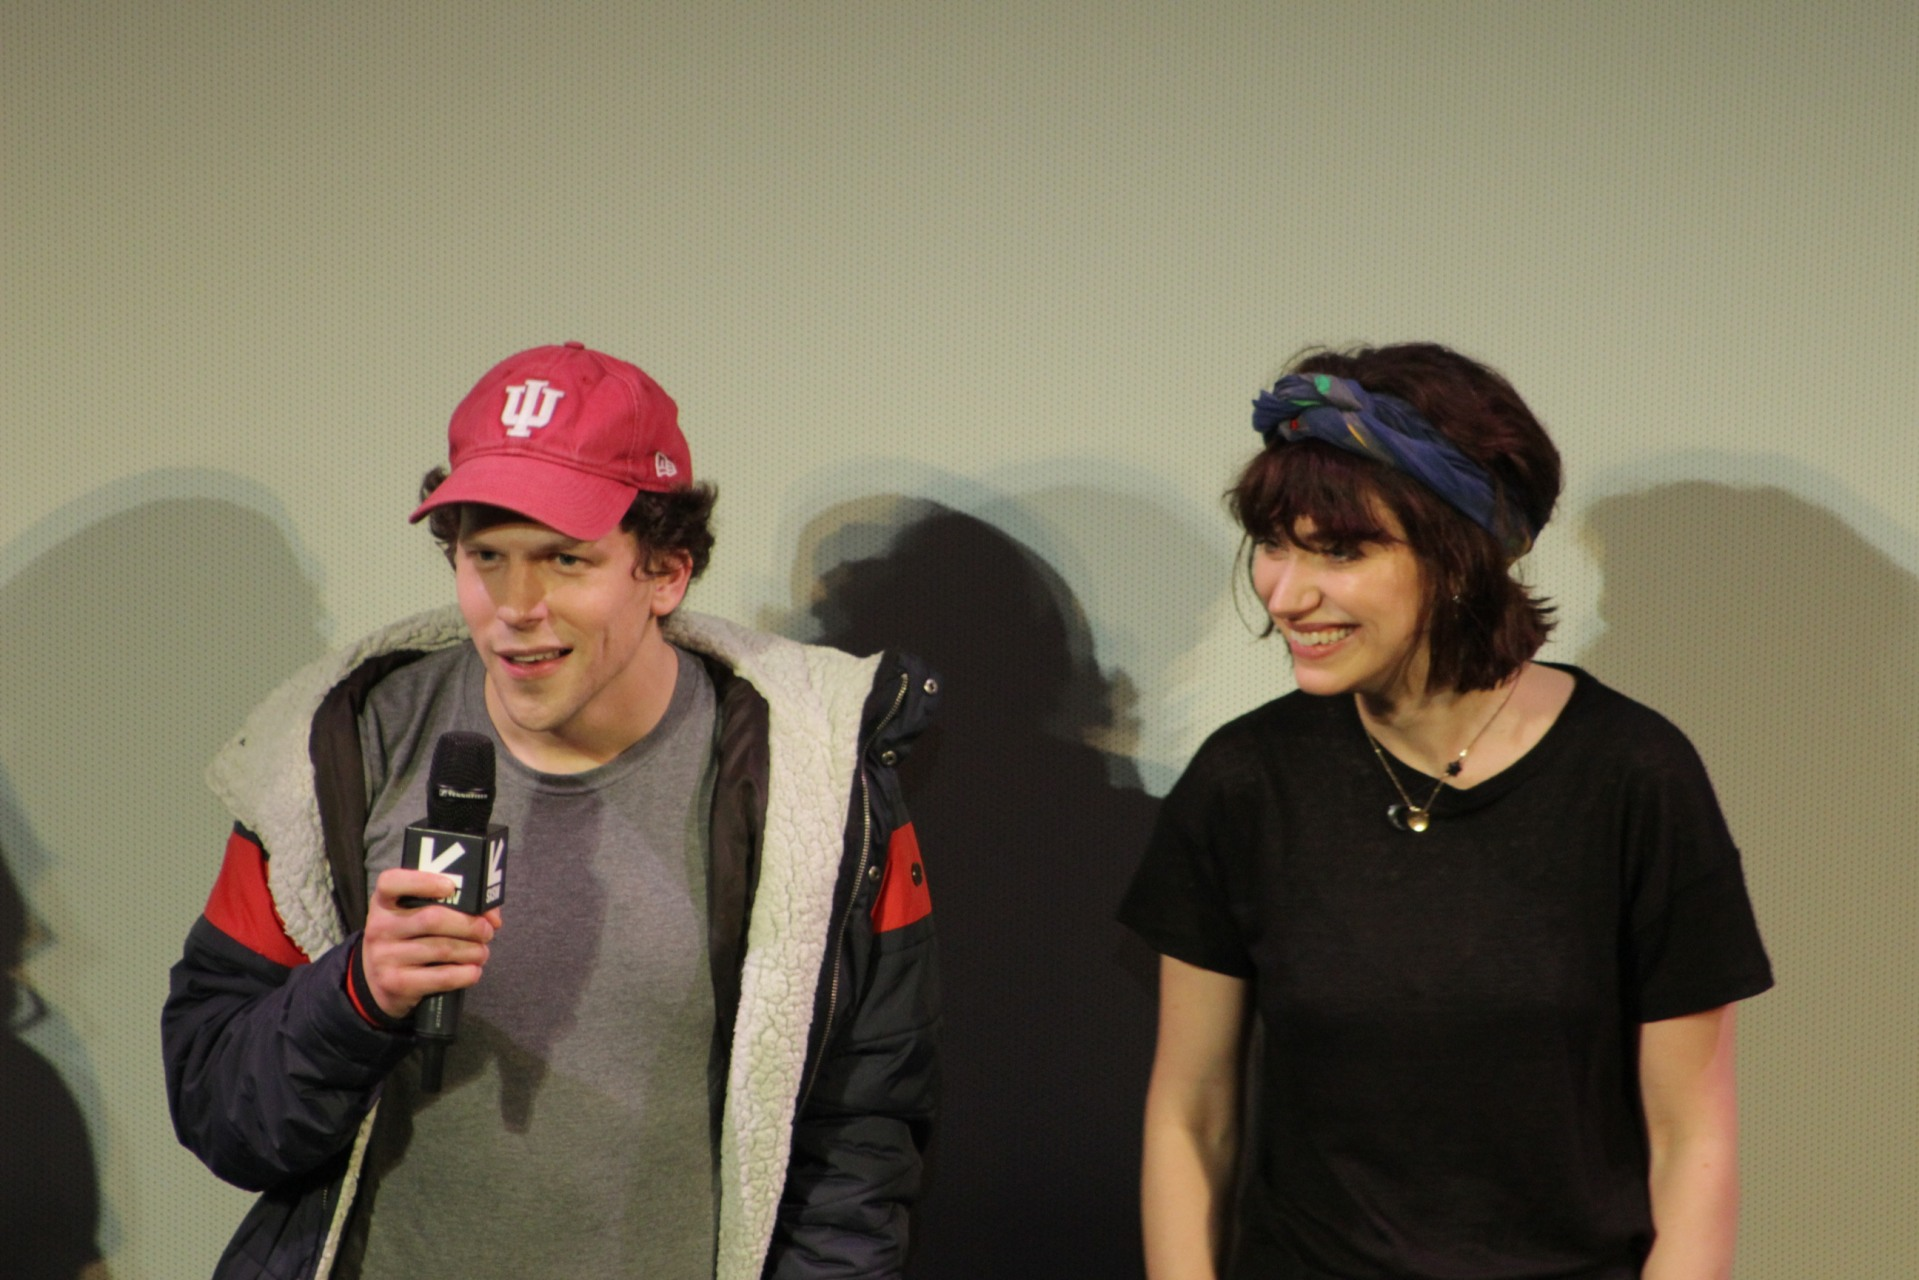 Jesse Eisenburg in a red cap and parka holding a microphone.